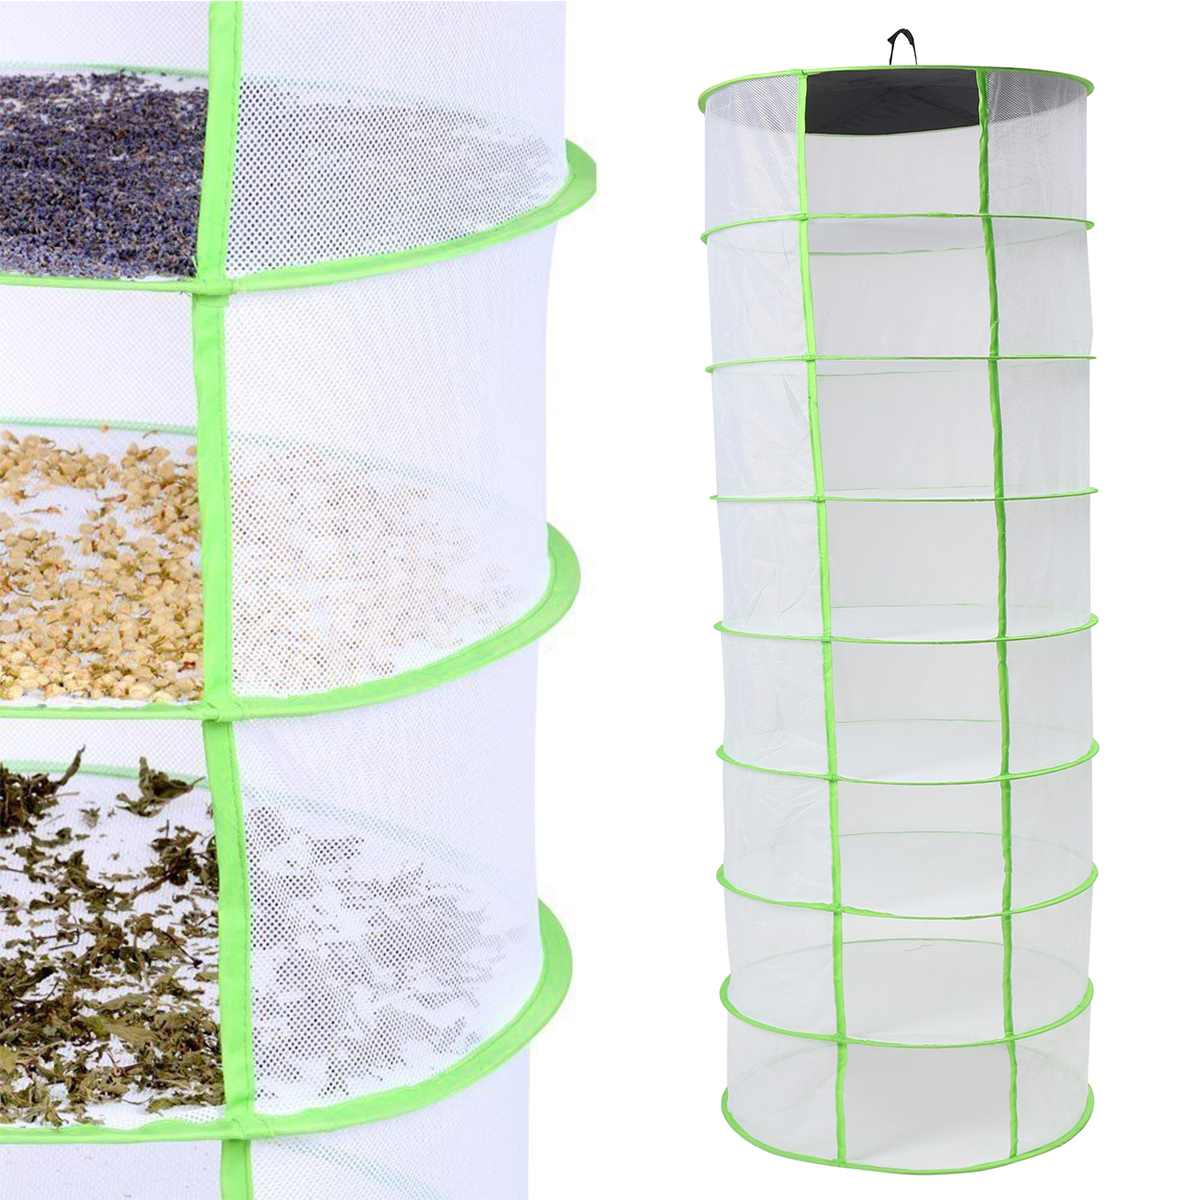 1Pc Foldable 8 Layer Herb Drying Rack Net Herb Dryer Mesh Hanging Dryer Fish Net Racks With Zipper Hanging Vegetable Fish Dishes